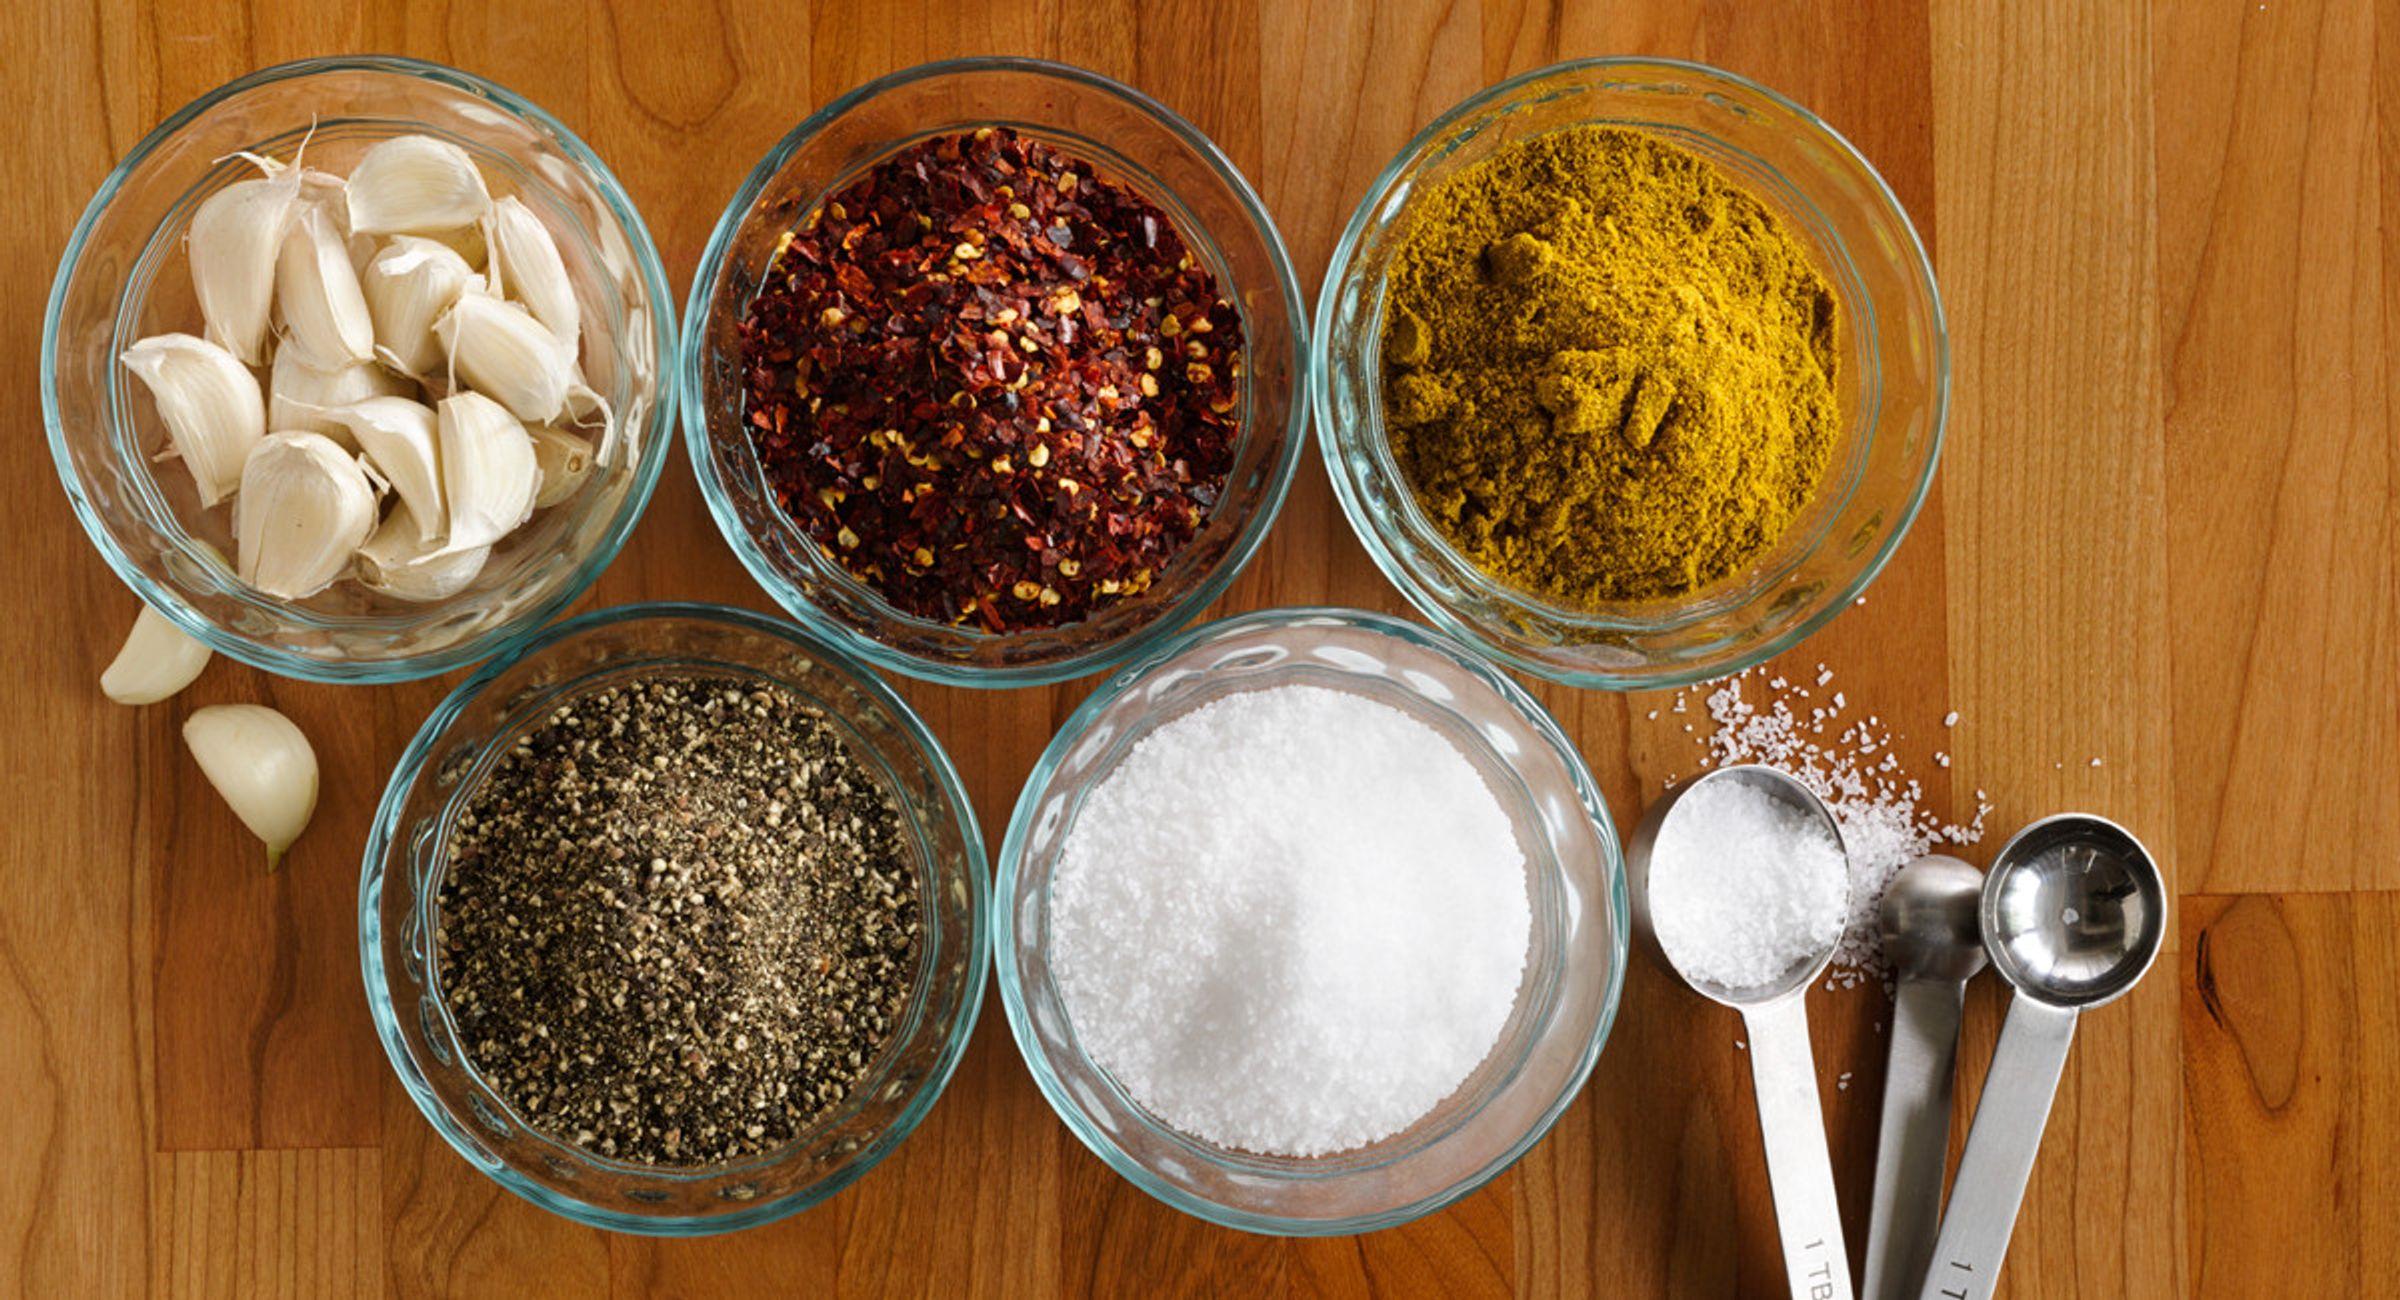 How to Fix a Spice Mishap